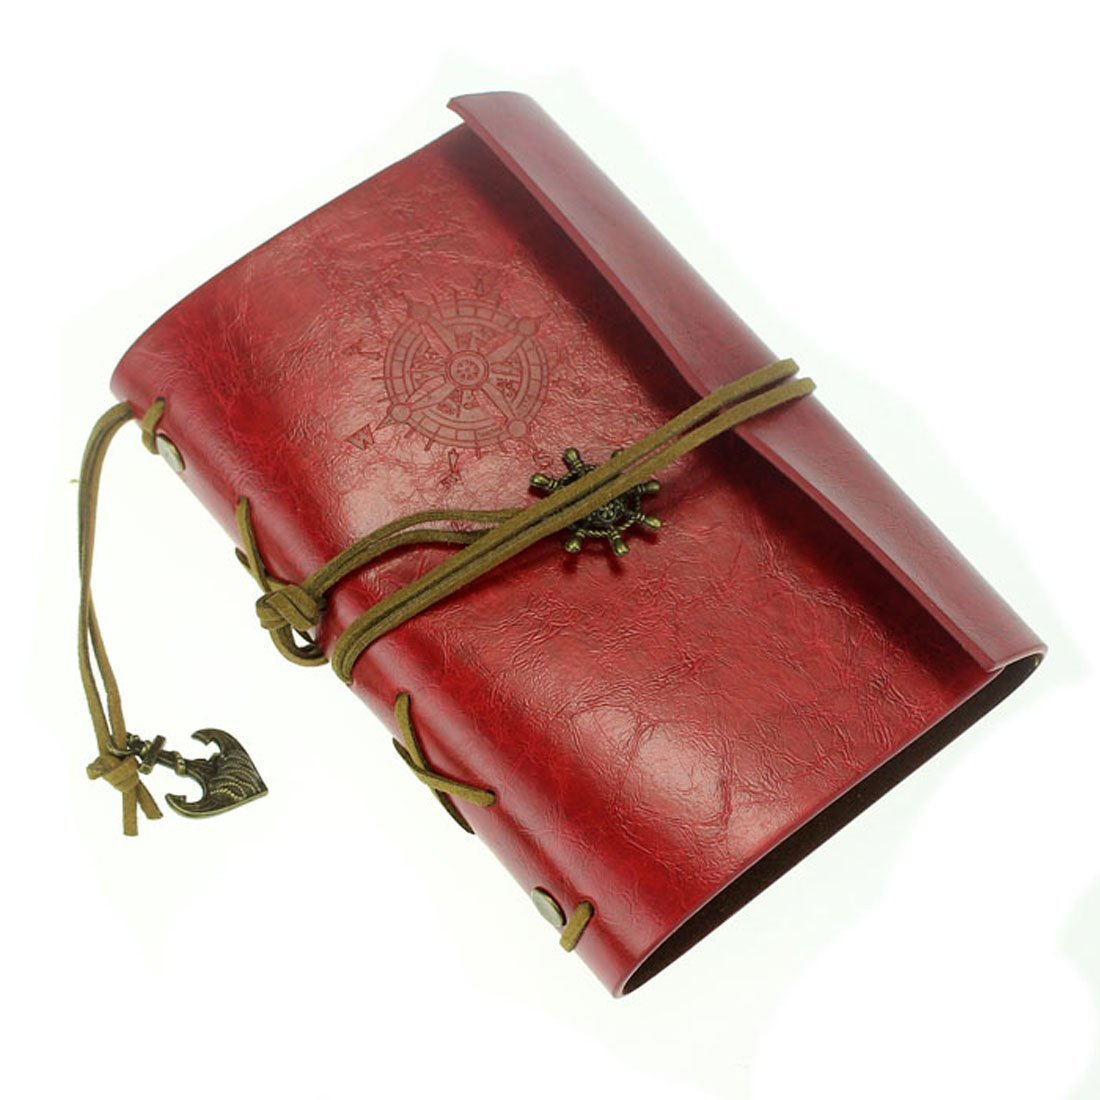 Notebook - SODIAL(R)Retro Vintage Leather Bound Blank Pages Journal Diary Notepad Notebook (Red) S